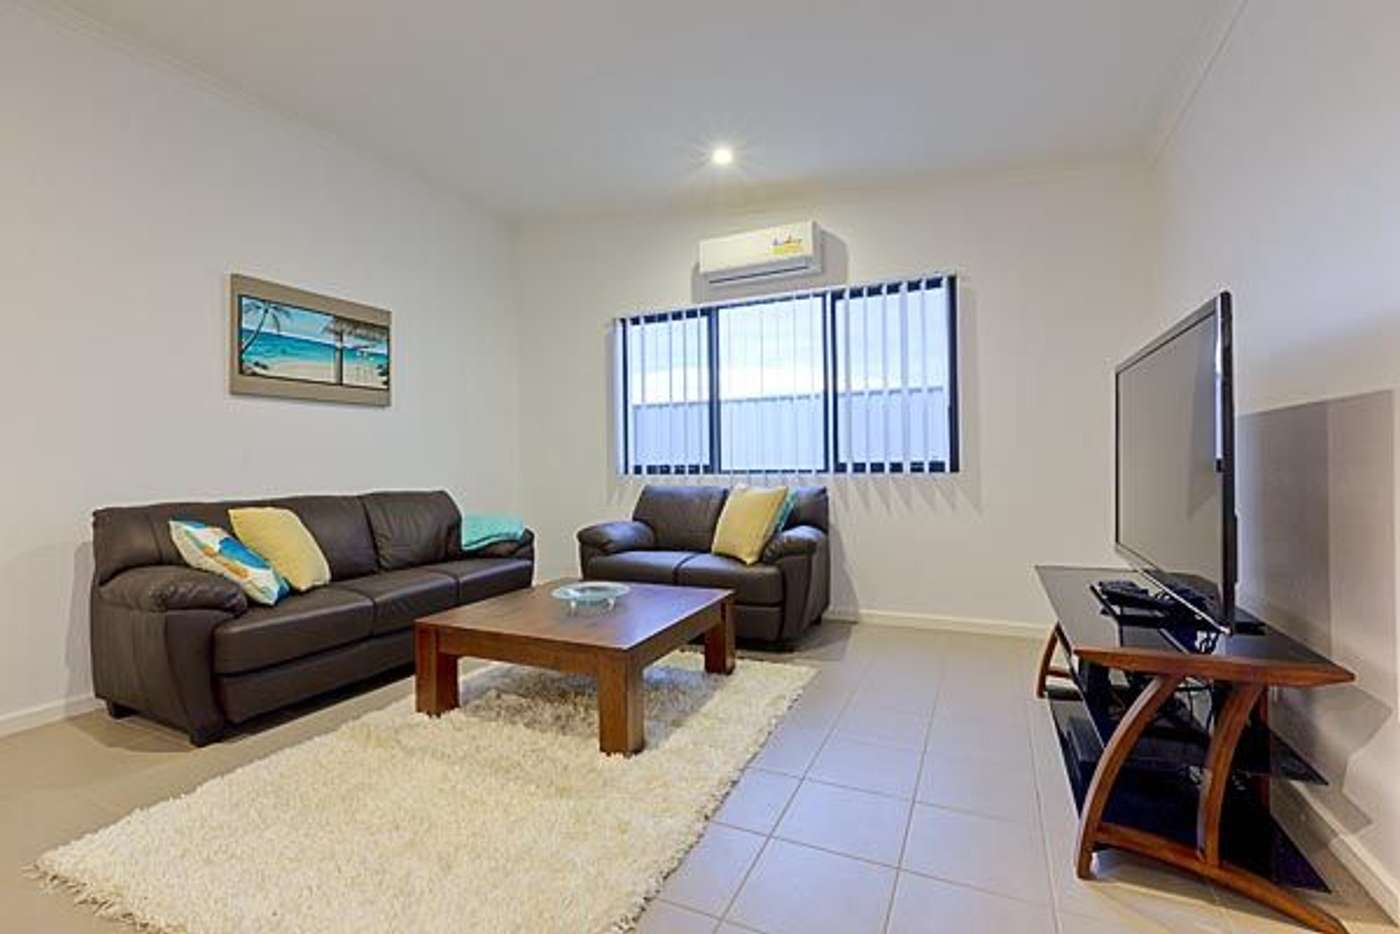 Main view of Homely house listing, 2/30 Dugong Close, Exmouth WA 6707